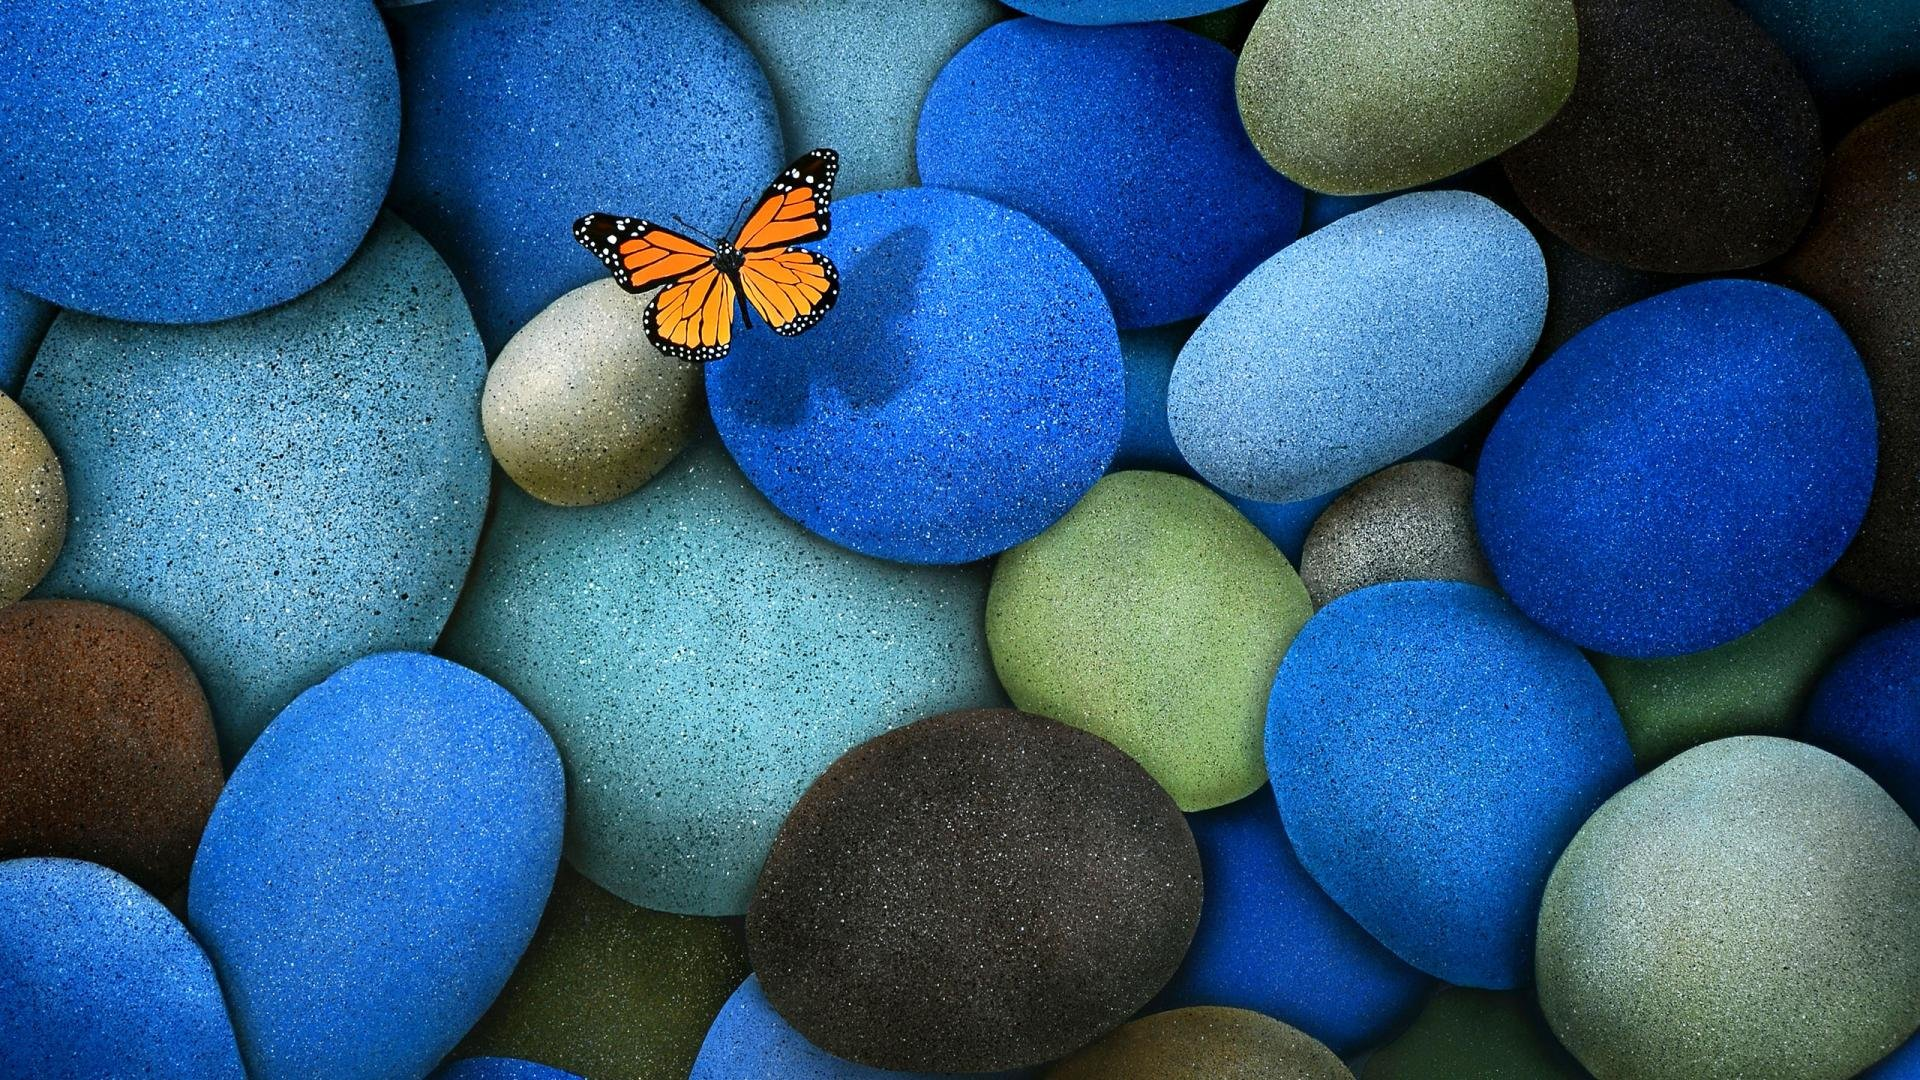 Butterfly On Colourful Stones wallpaper